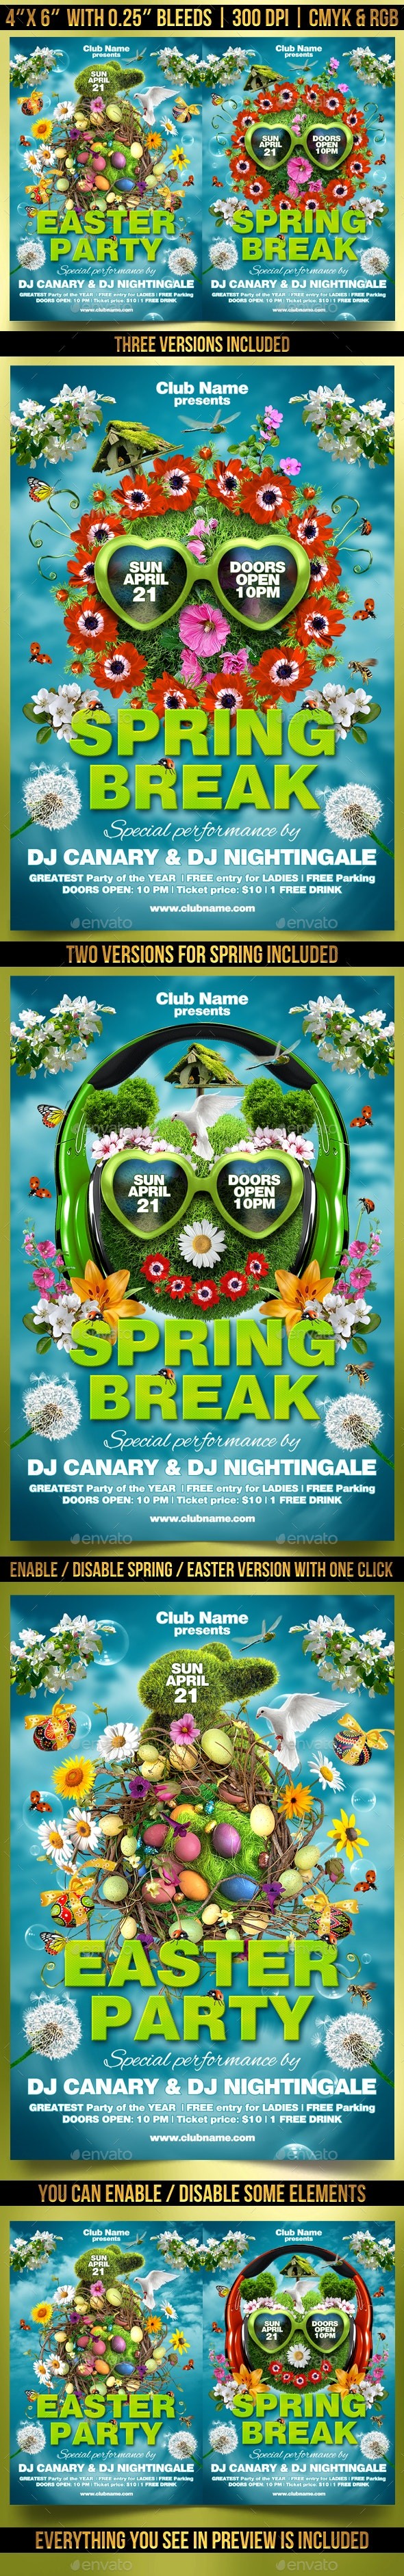 Spring and Easter Party Flyer Template - Clubs & Parties Events